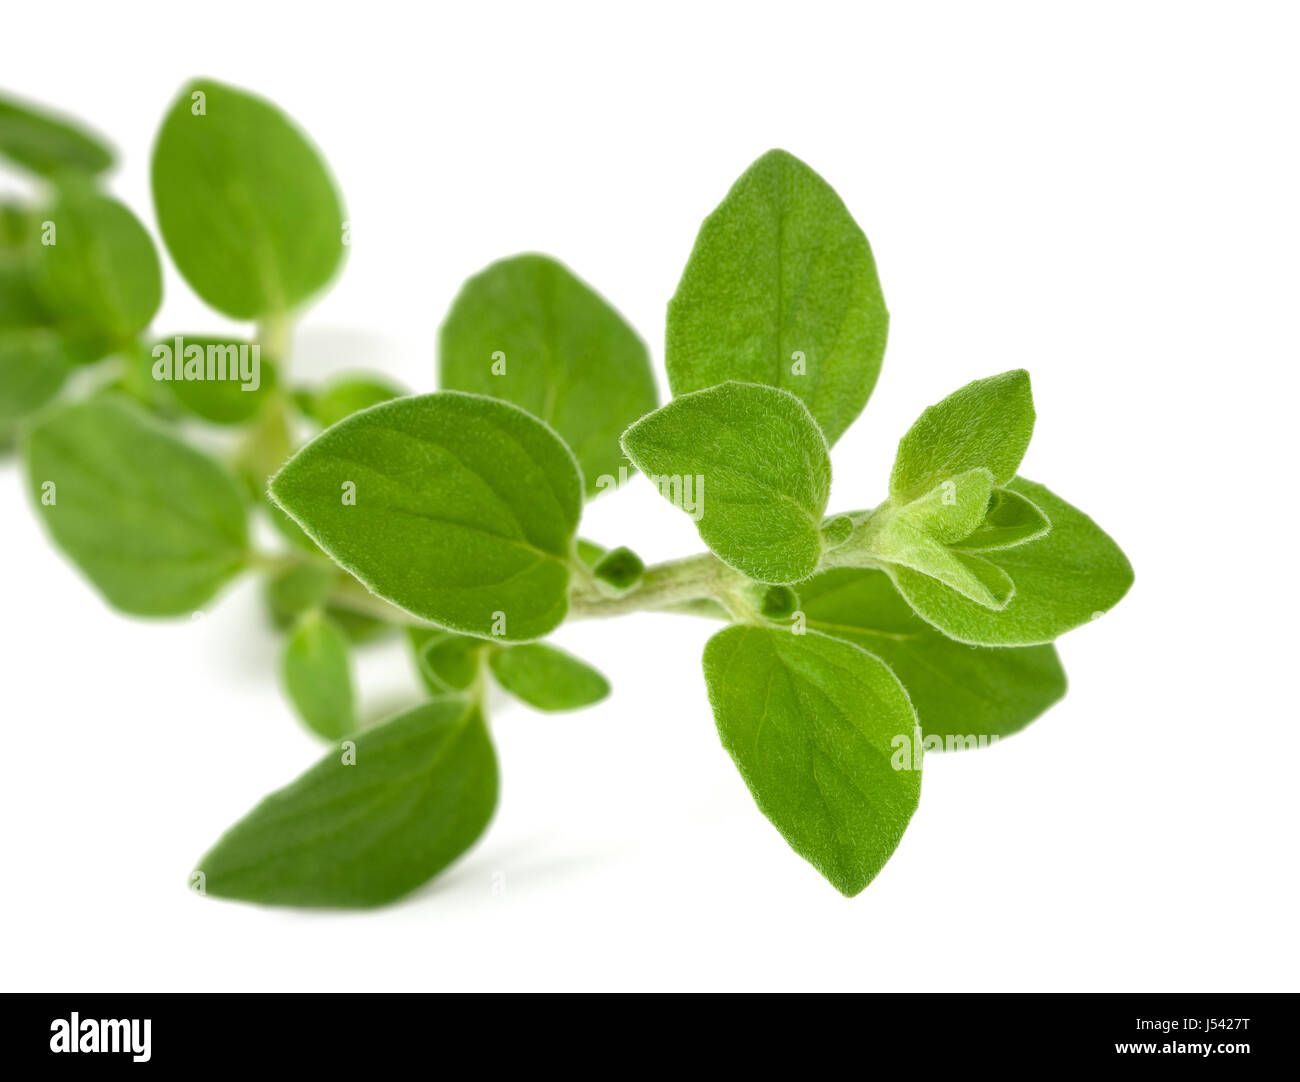 oregano sprig isolated on white background - Stock Image